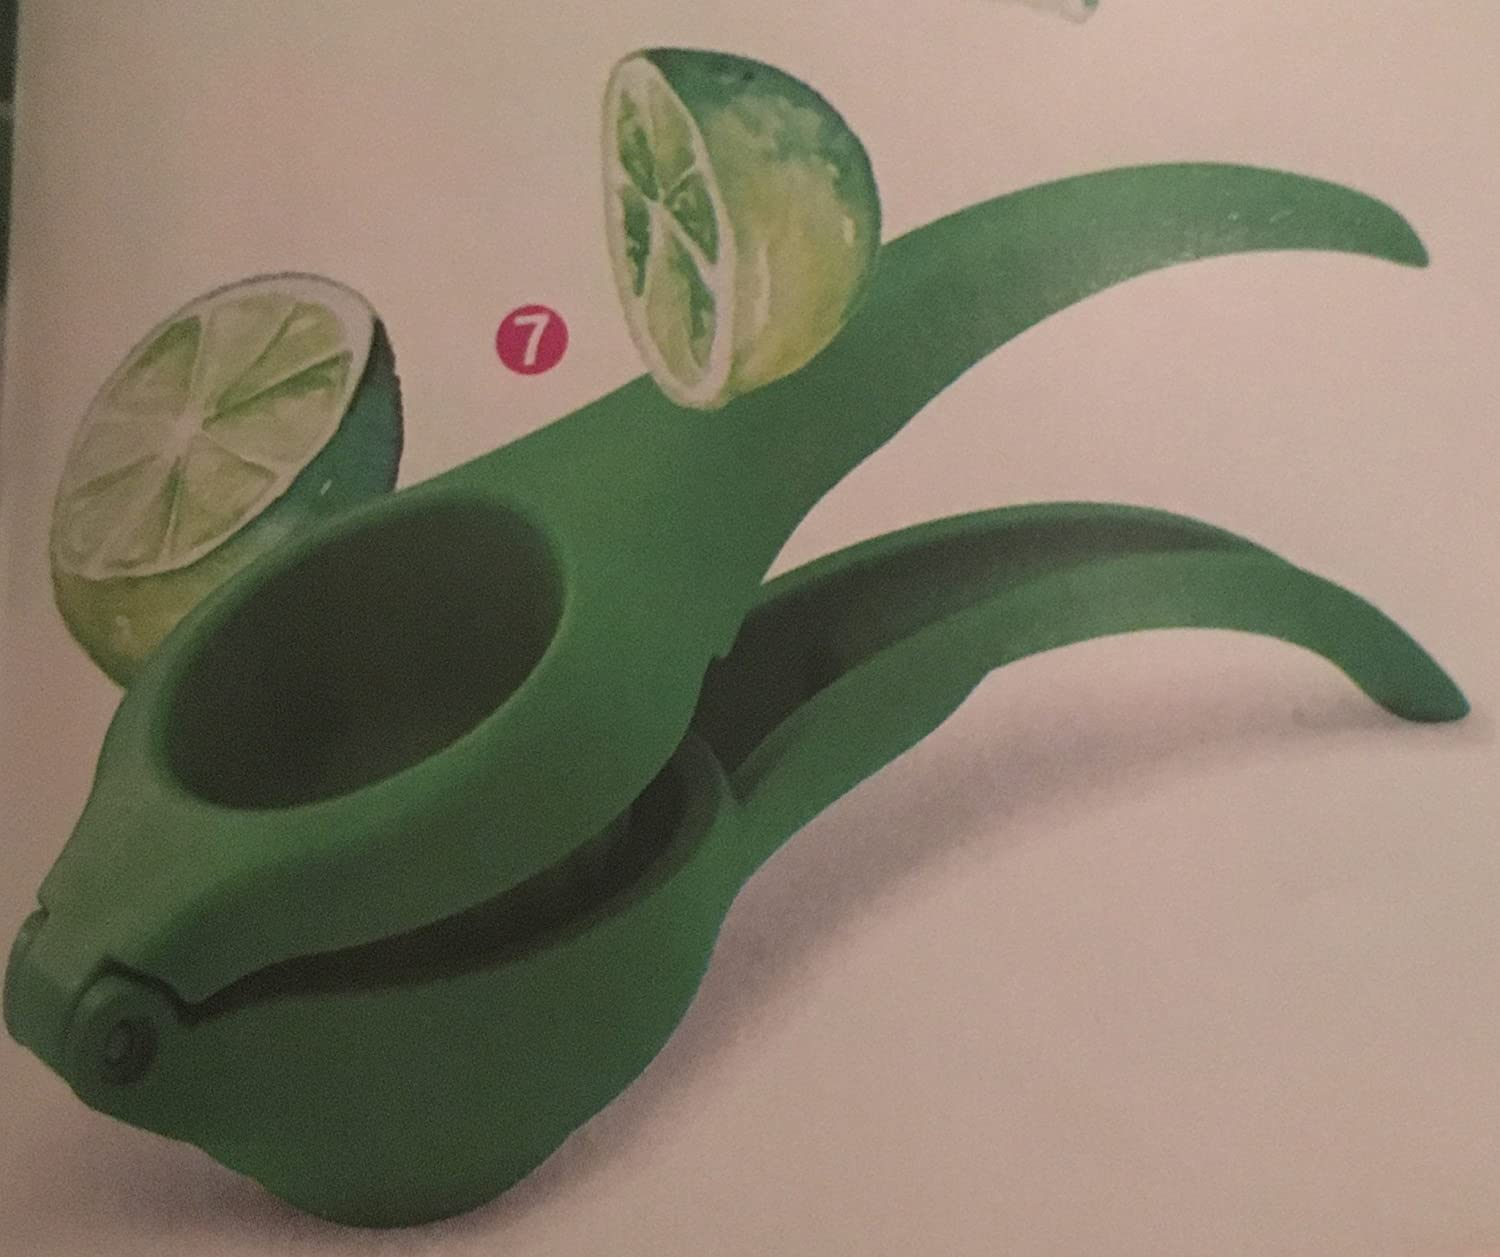 Tupperware Limited Edition Lemon Lime Press for Juicing Lemons/limes